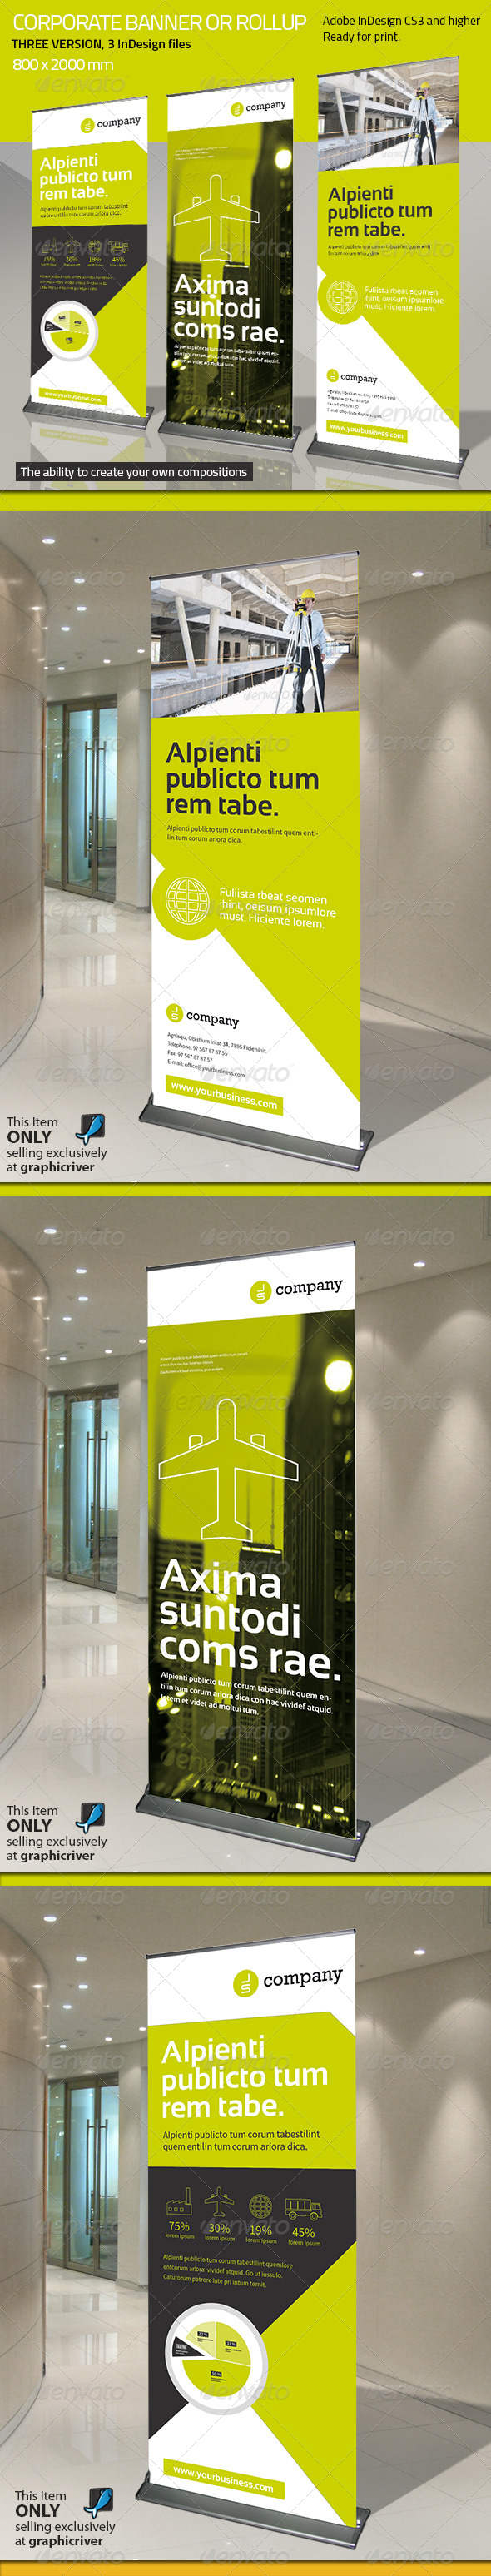 GraphicRiver Corporate Banner or Rollup Vol 6 7735014